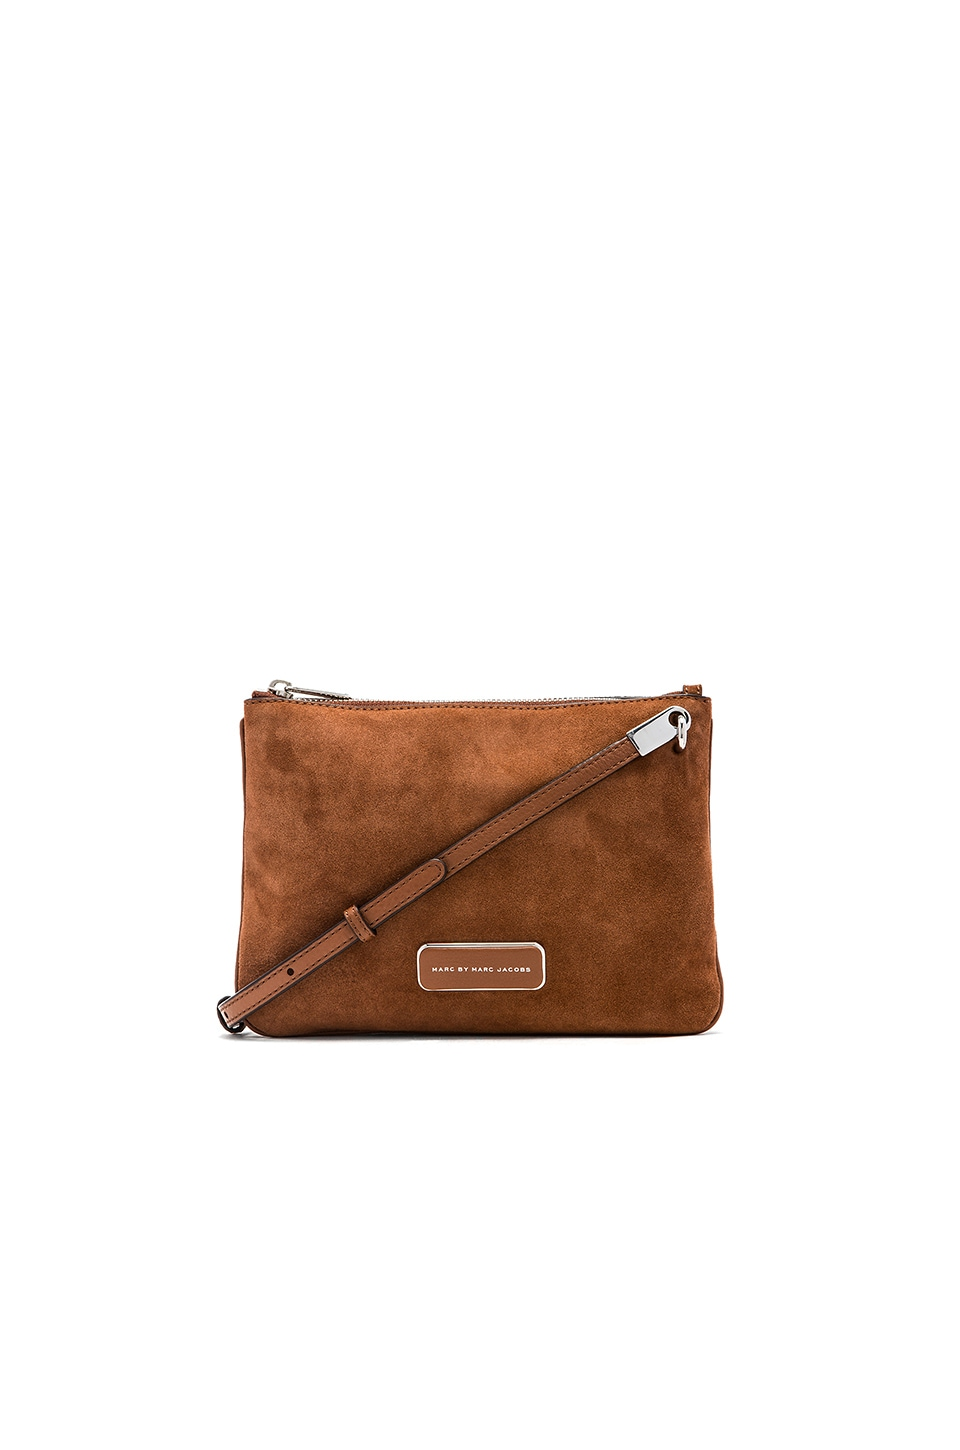 Marc by Marc Jacobs Ligero Sporty Suede Double Percy Crossbody in Cinamon Stick